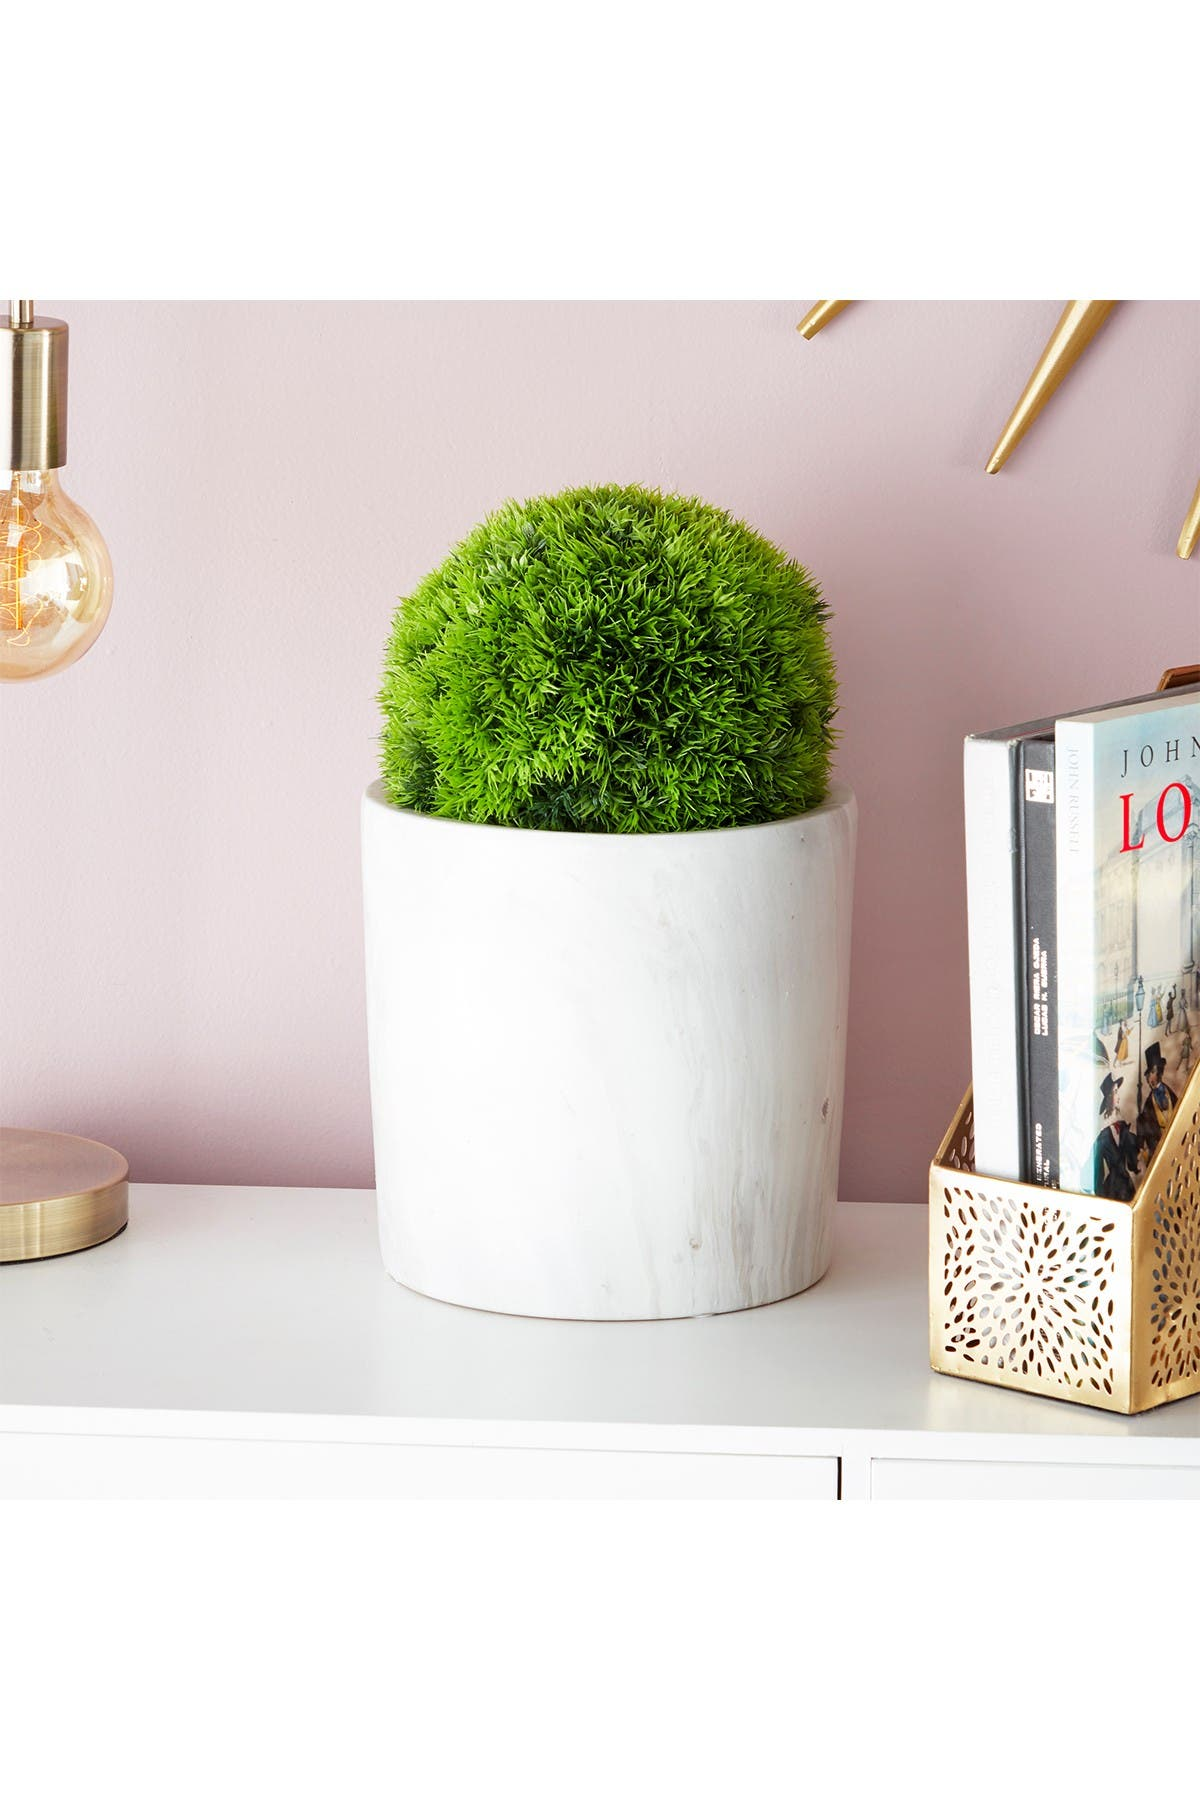 Cosmoliving By Cosmopolitan Small Decorative Faux Grass Indoor Topiary Ball Nordstrom Rack